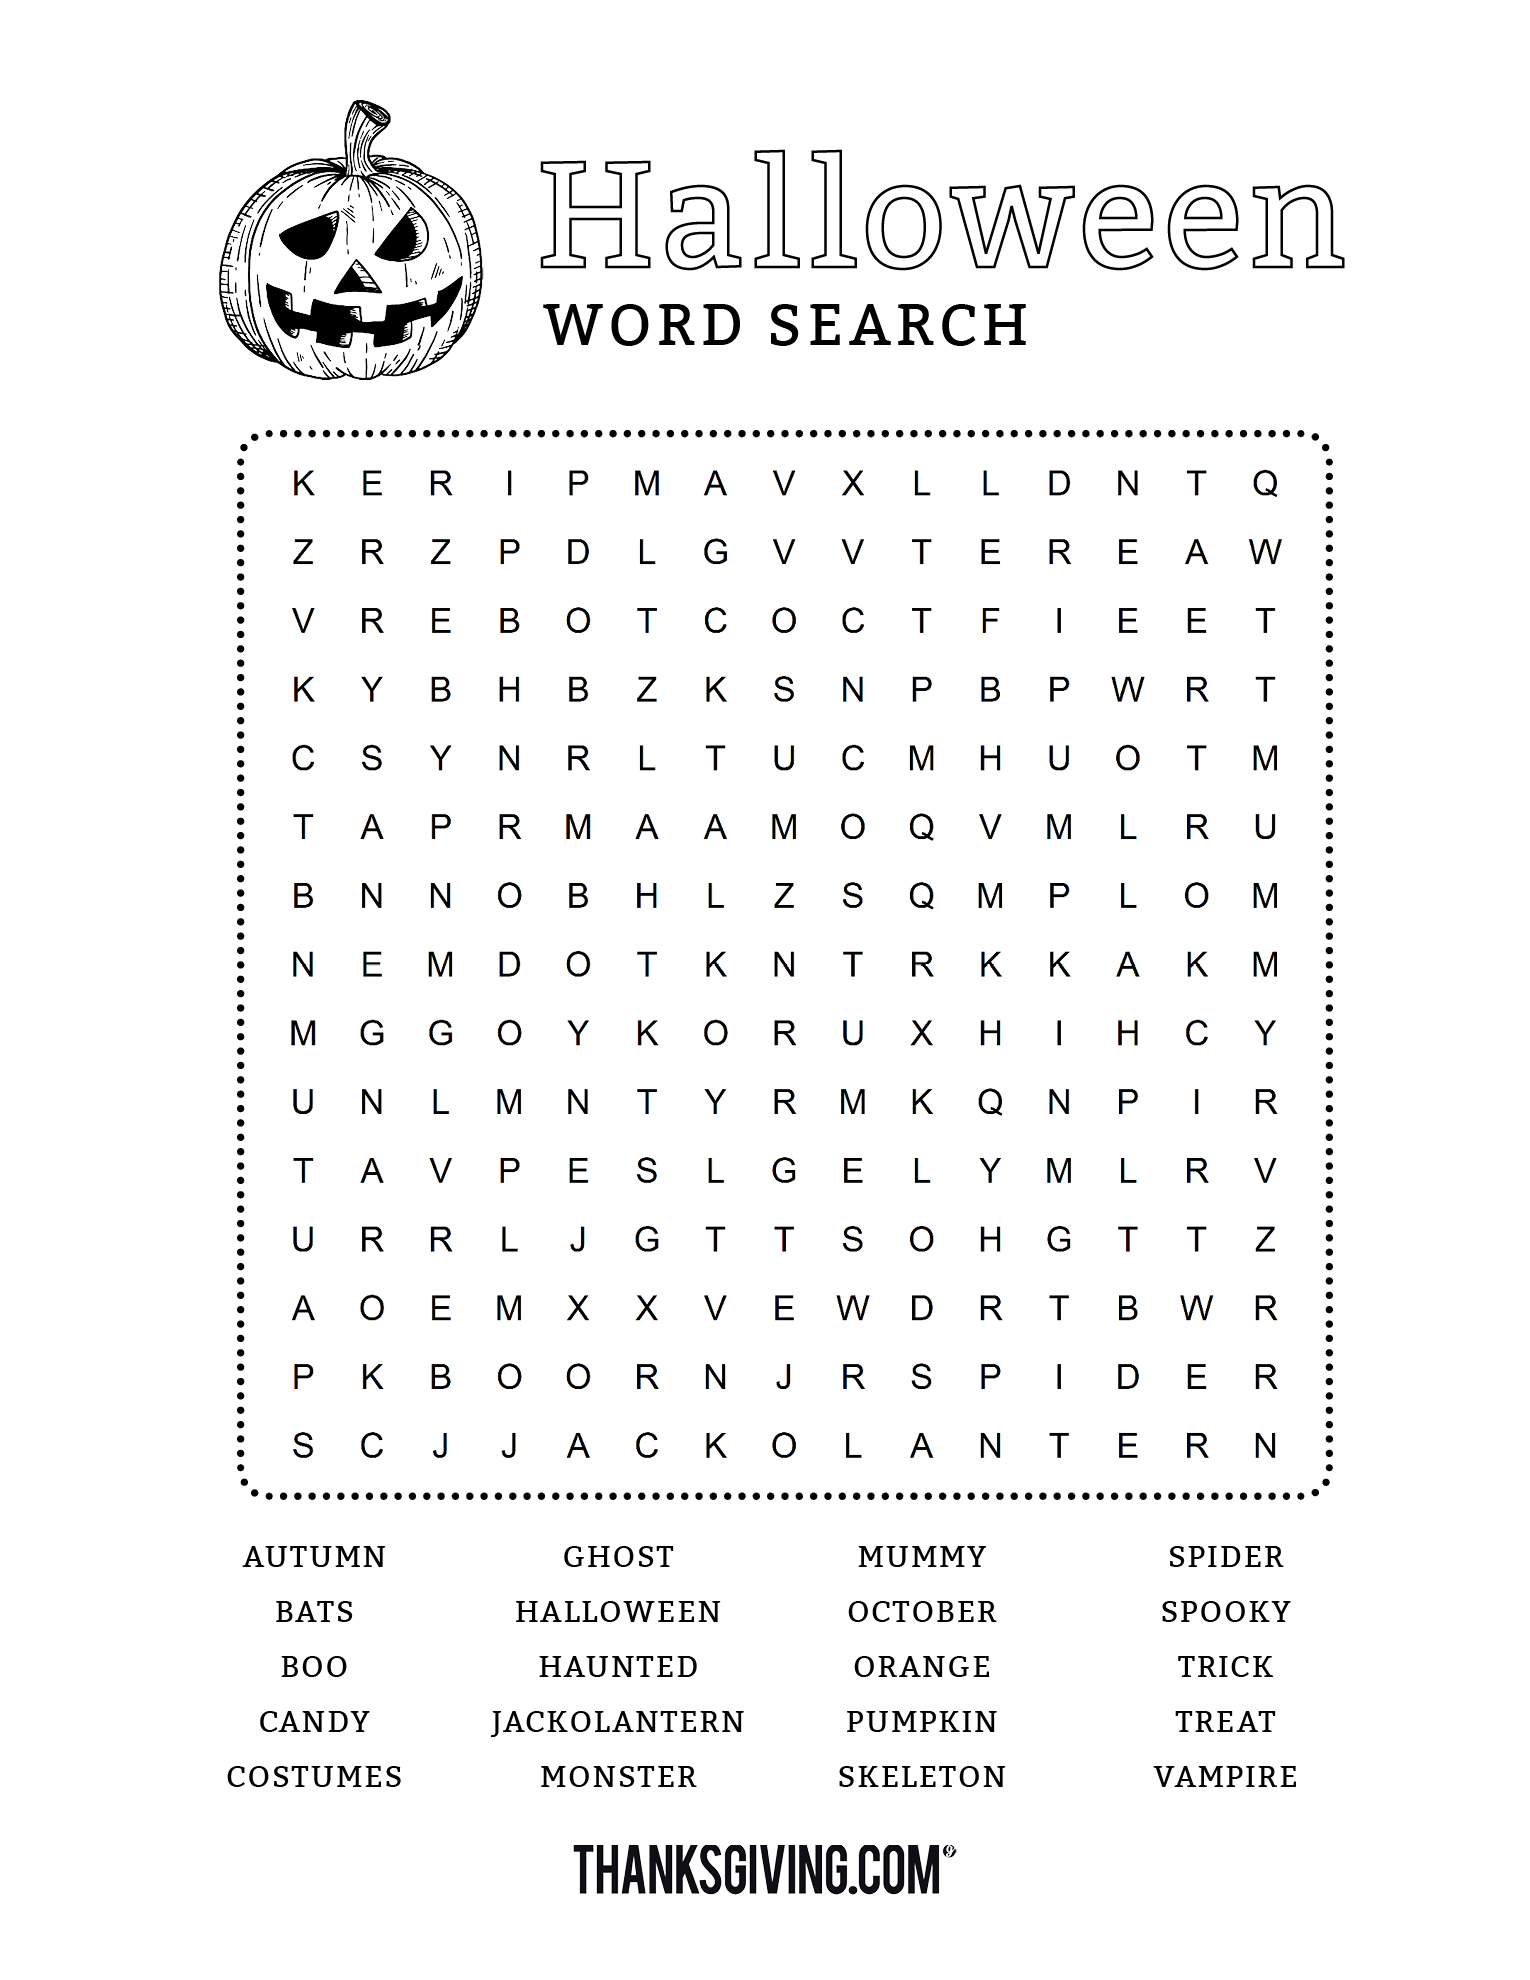 Fun & Free Printable Halloween Word Search - Thanksgiving - Free Printable Halloween Word Search Puzzles